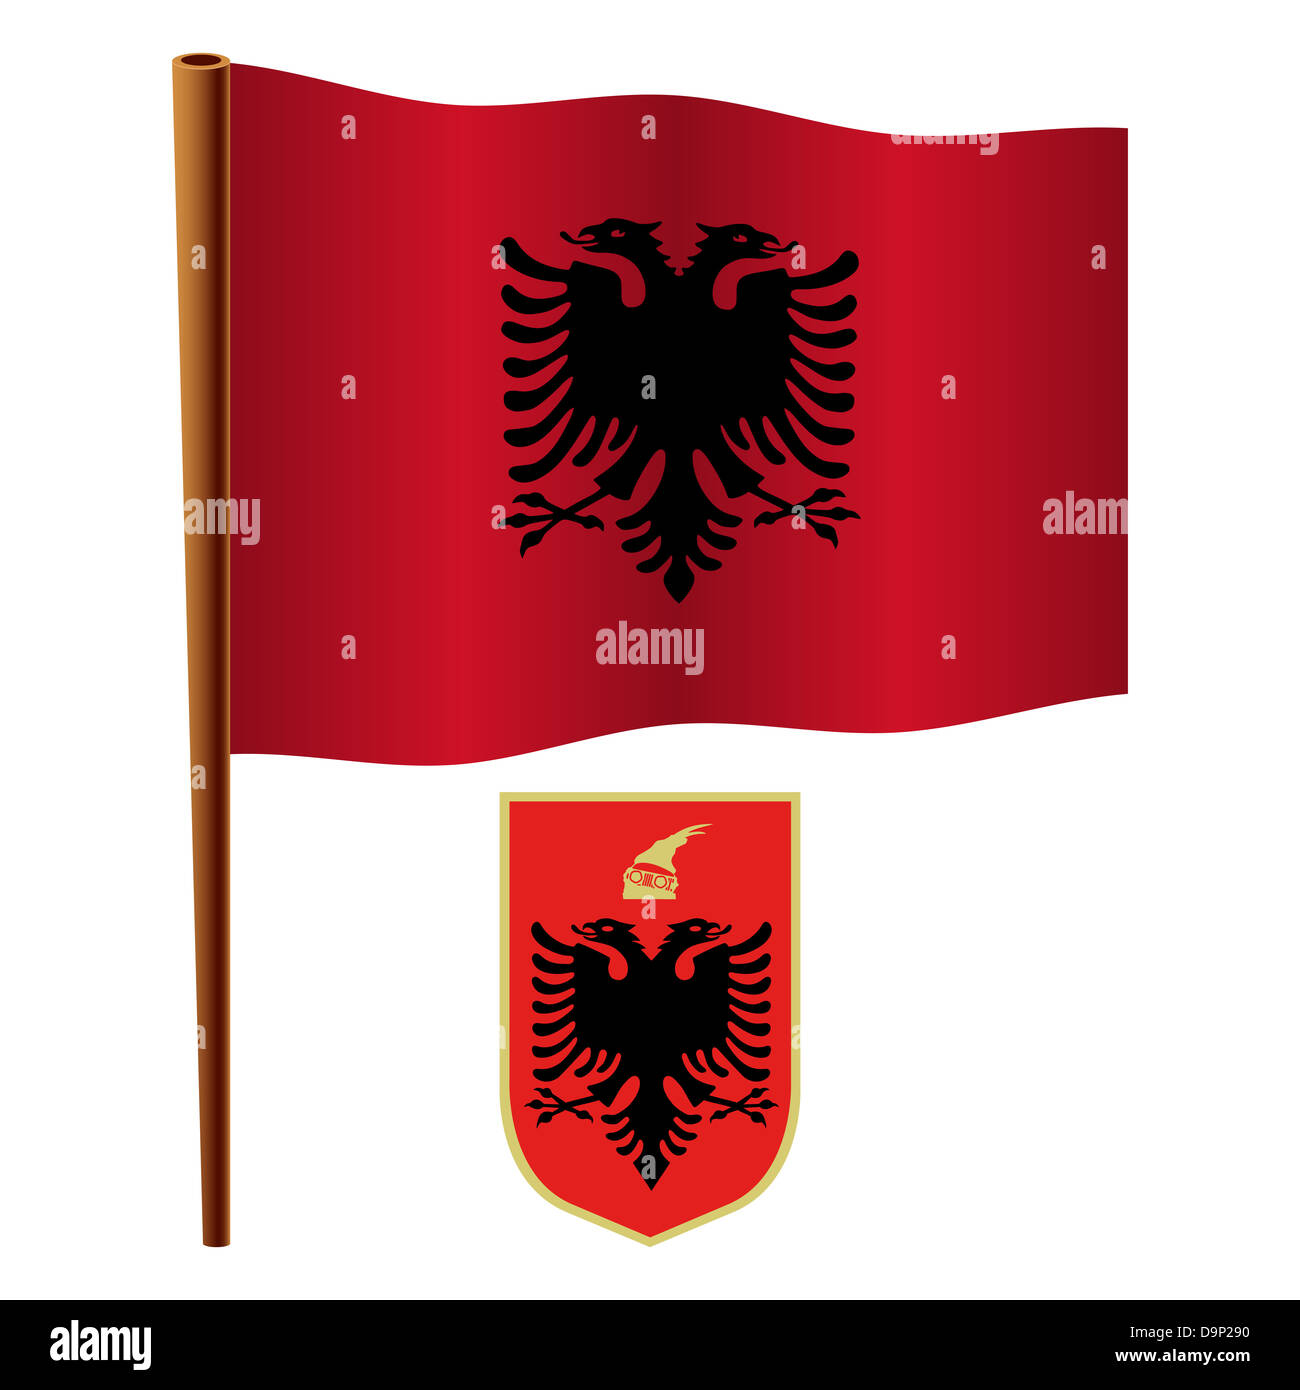 albania wavy flag and coat of arms against white background, vector art illustration, image contains transparency - Stock Image